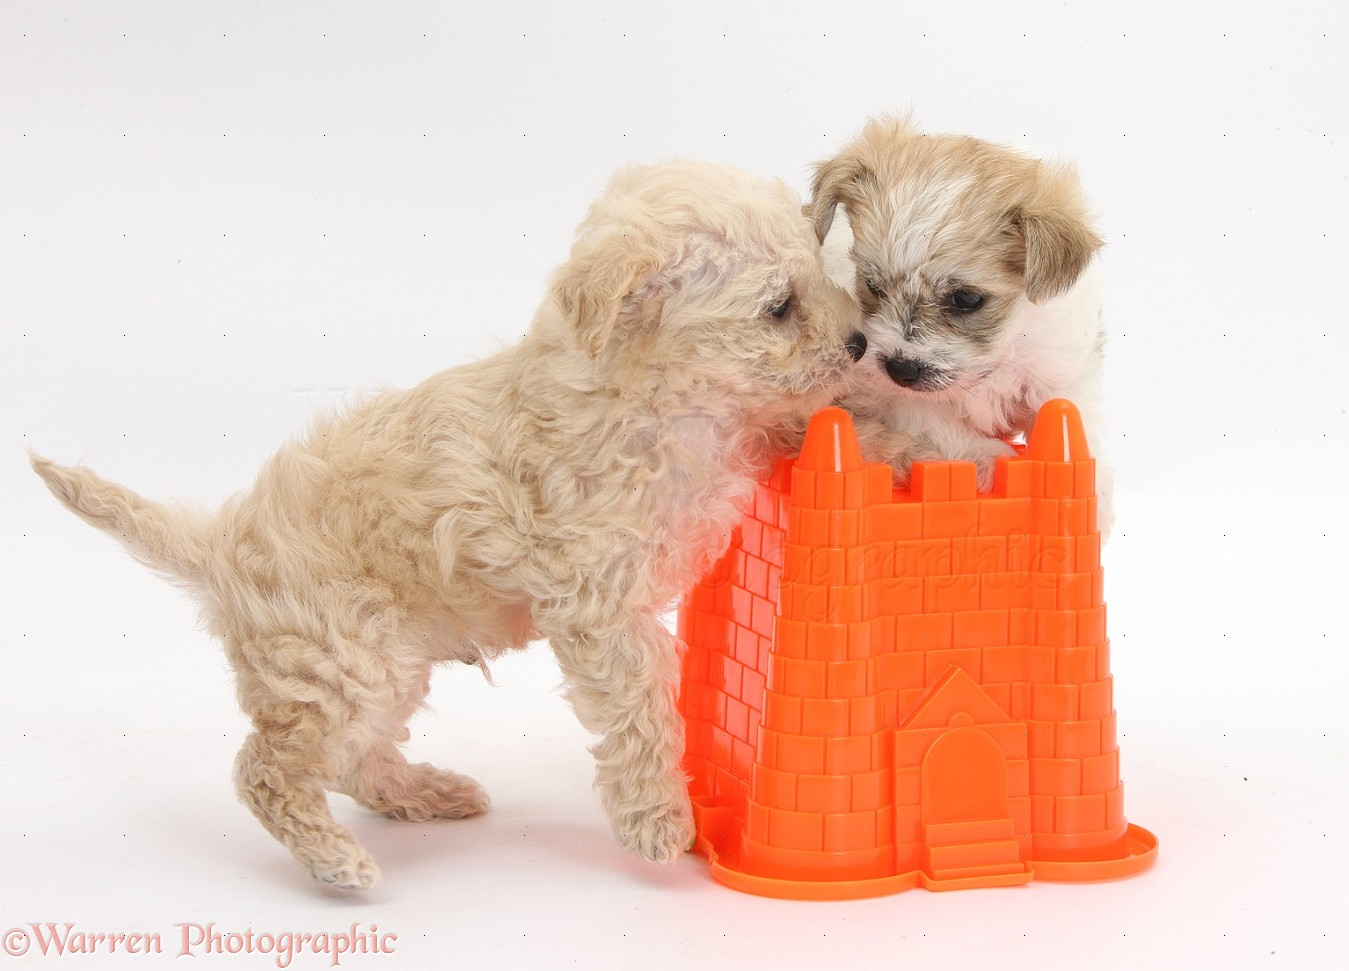 Dogs: Cute Bichon x Yorkie pups playing with a bucket ...